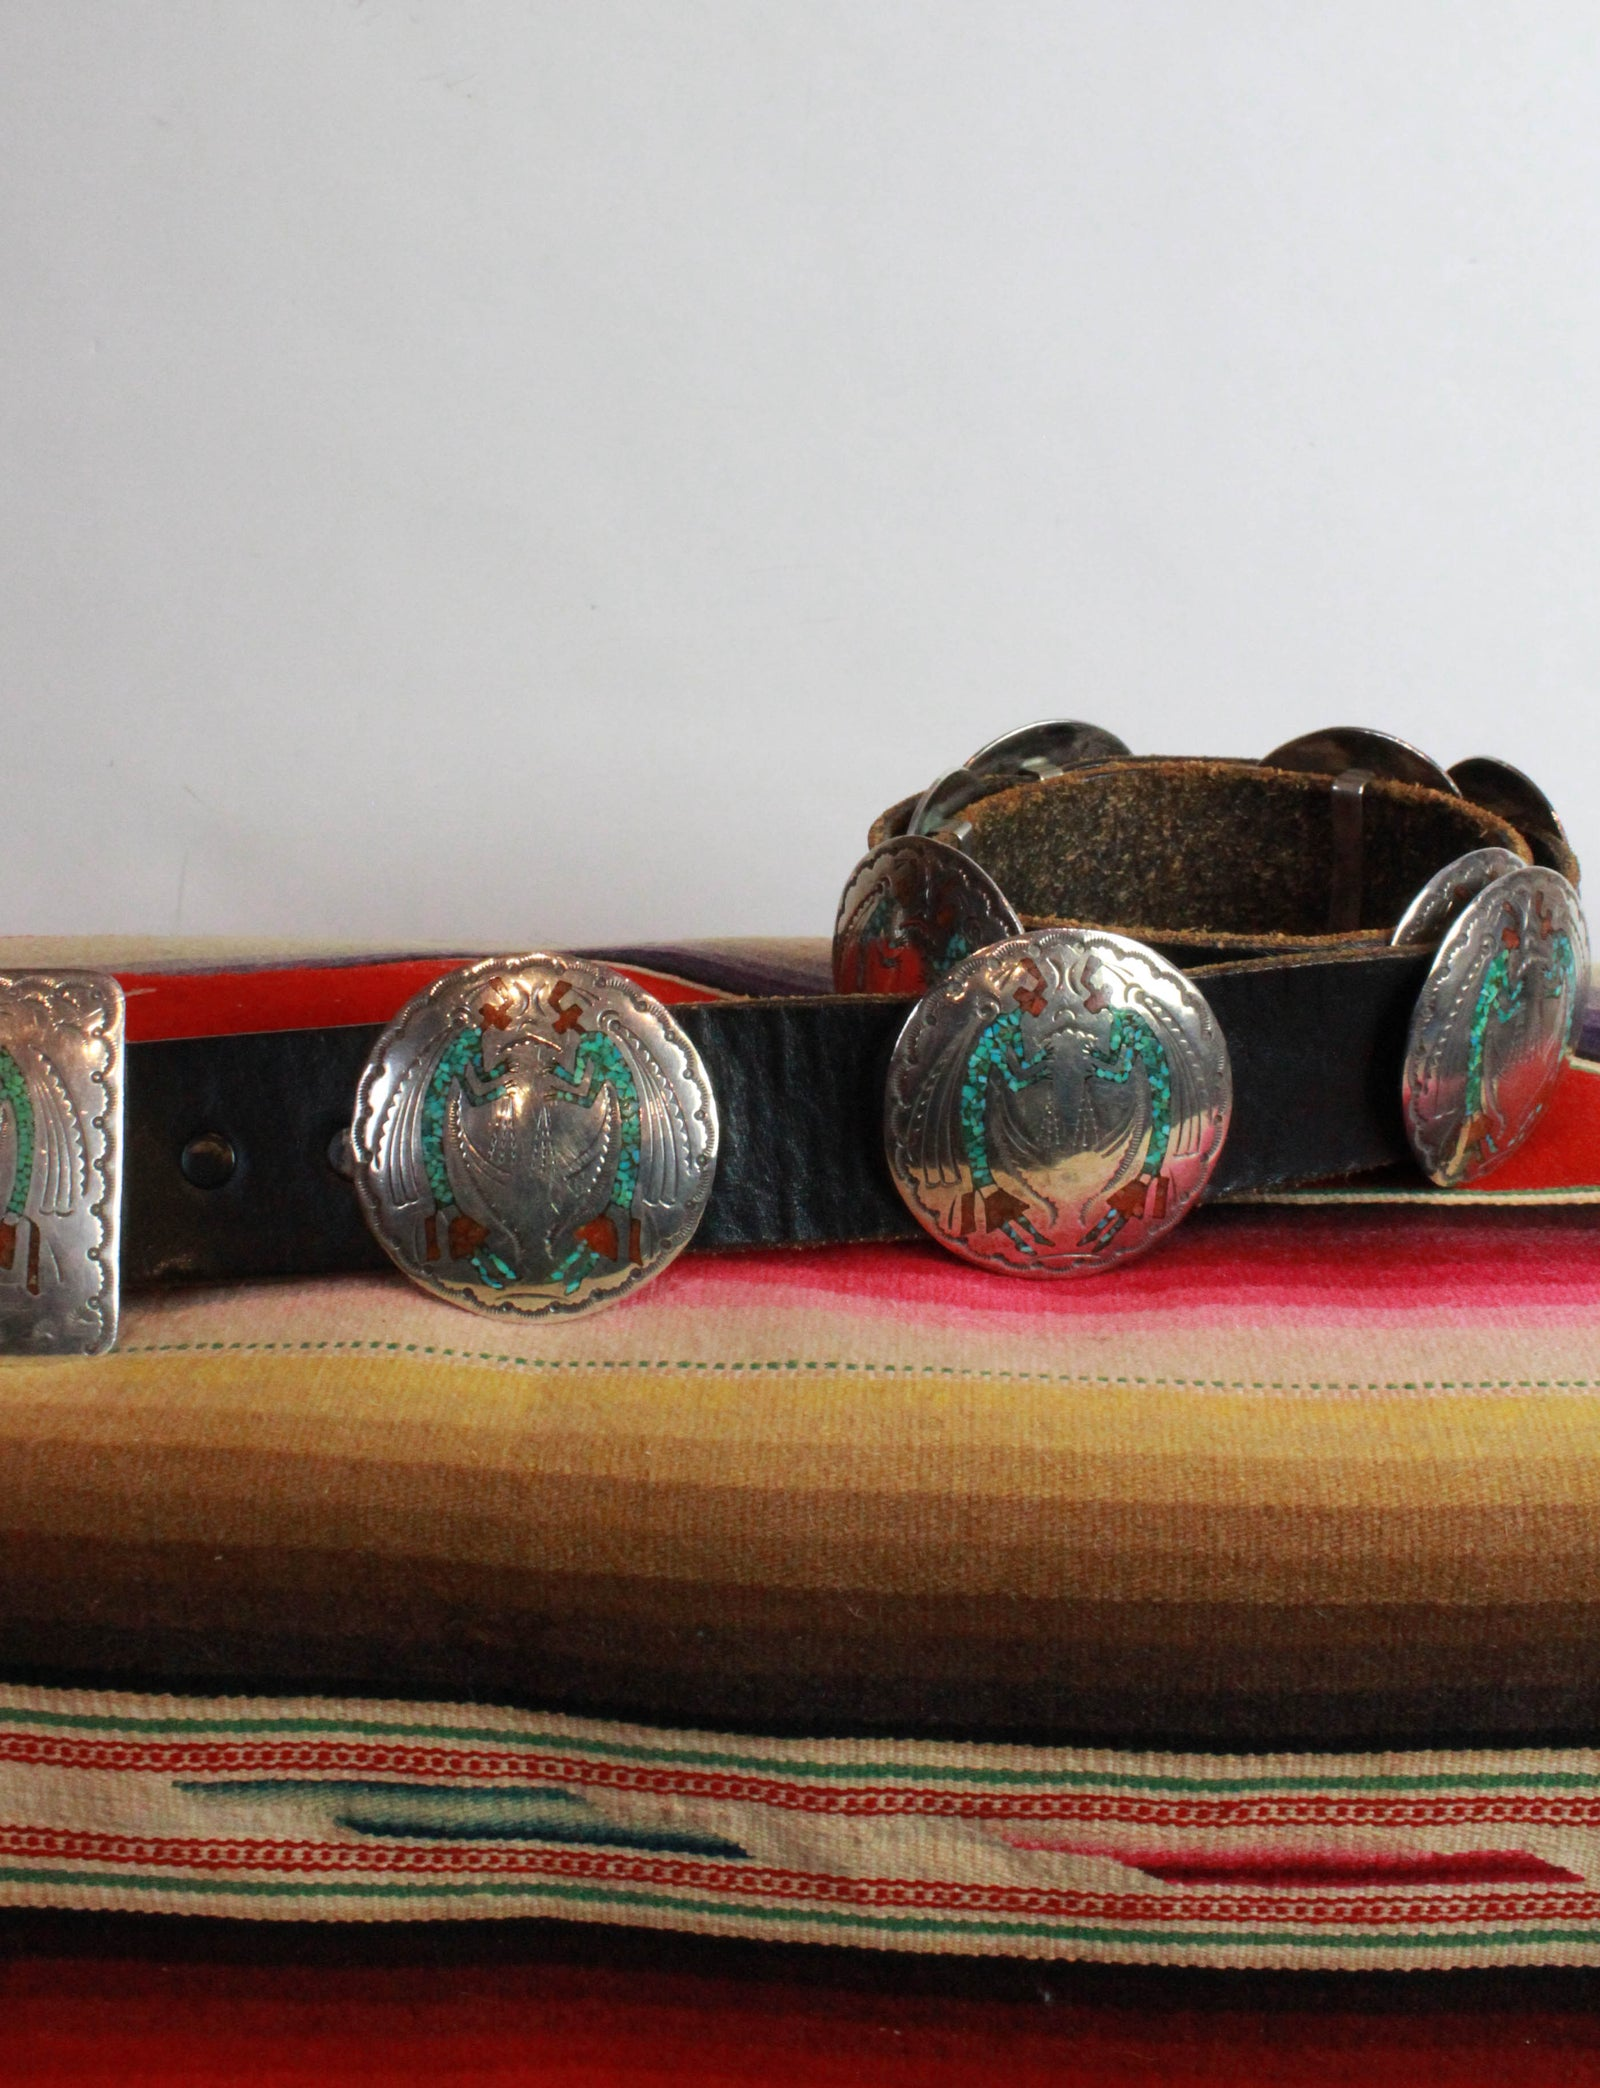 Vintage 70's Navajo Concho Belt Handstamped Sterling Silver, Turquoise, And Coral